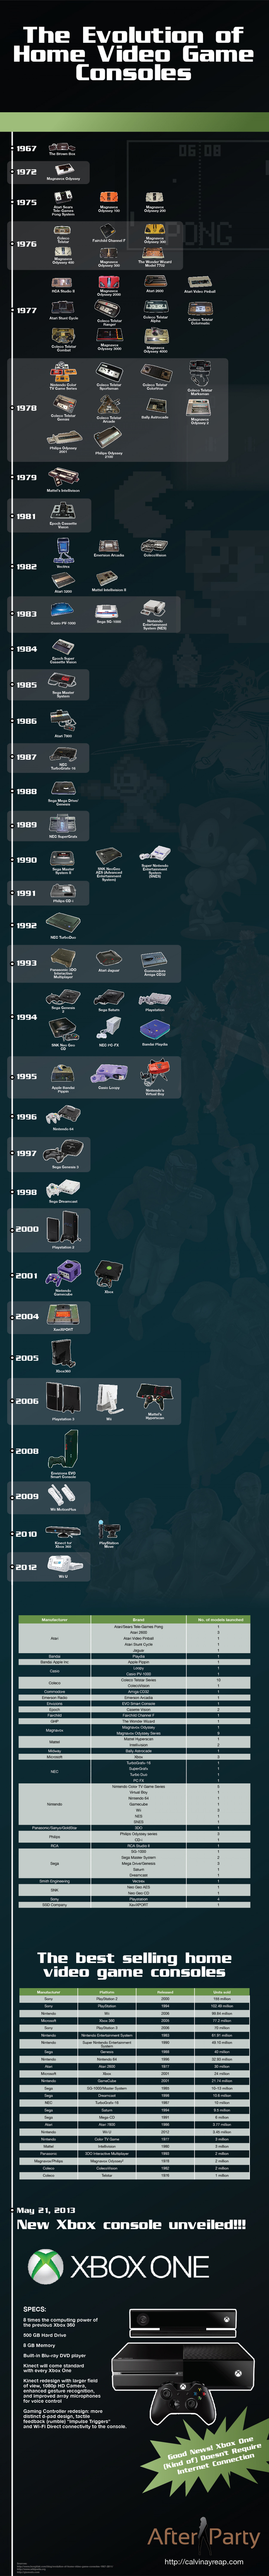 The Evolution of Home Video Game Consoles Infographic